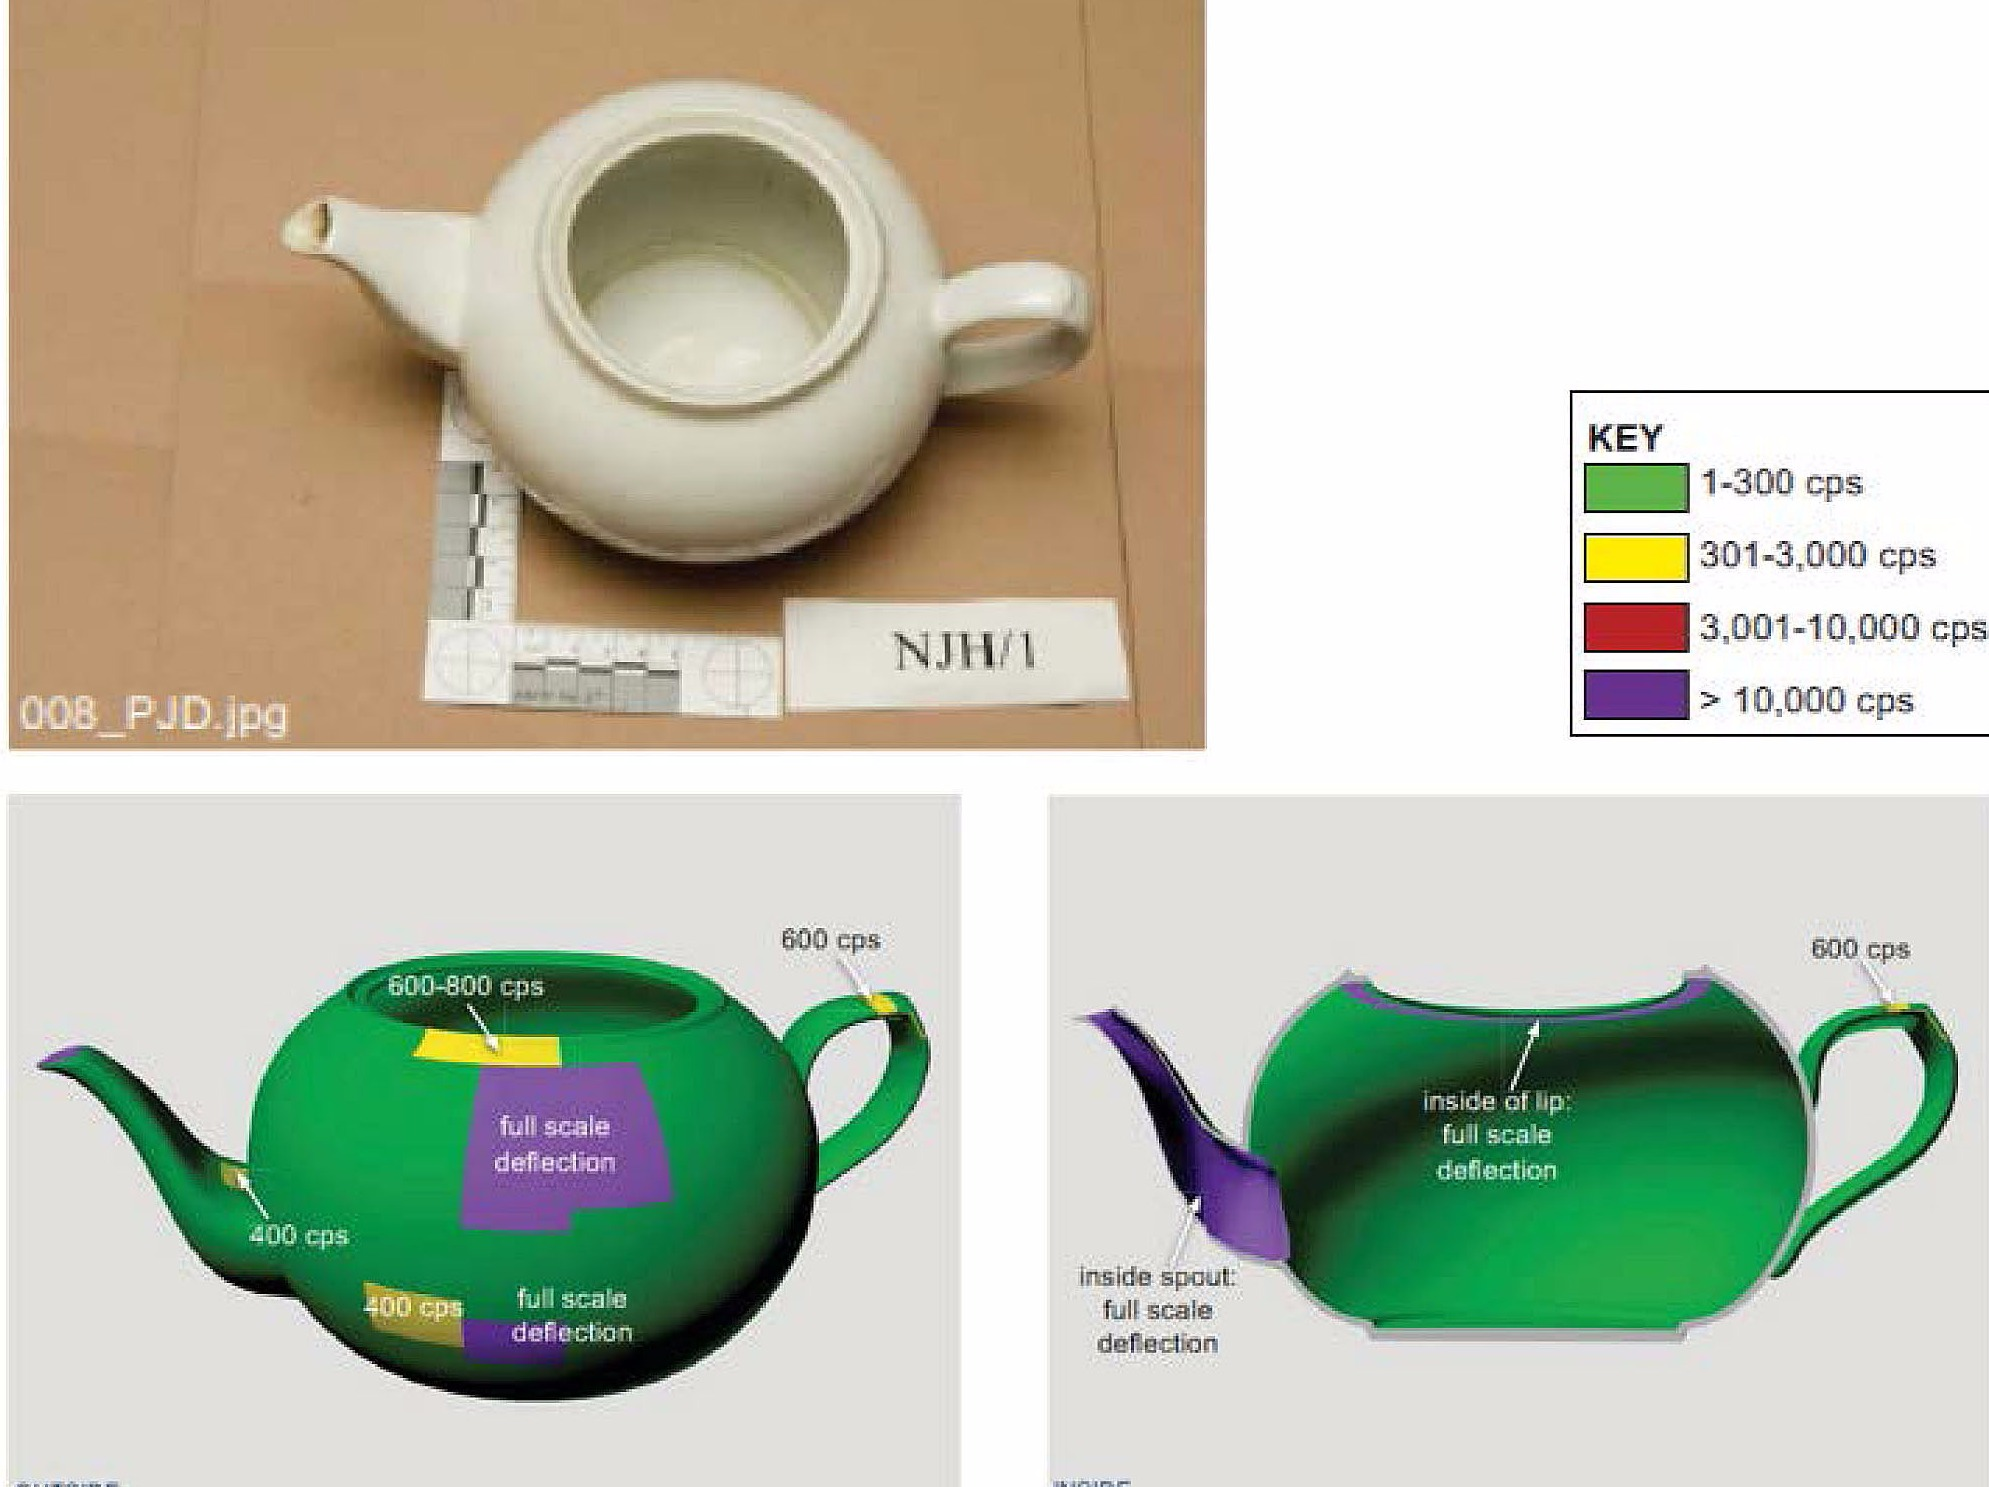 Images released of teapot used to poison Litvinenko